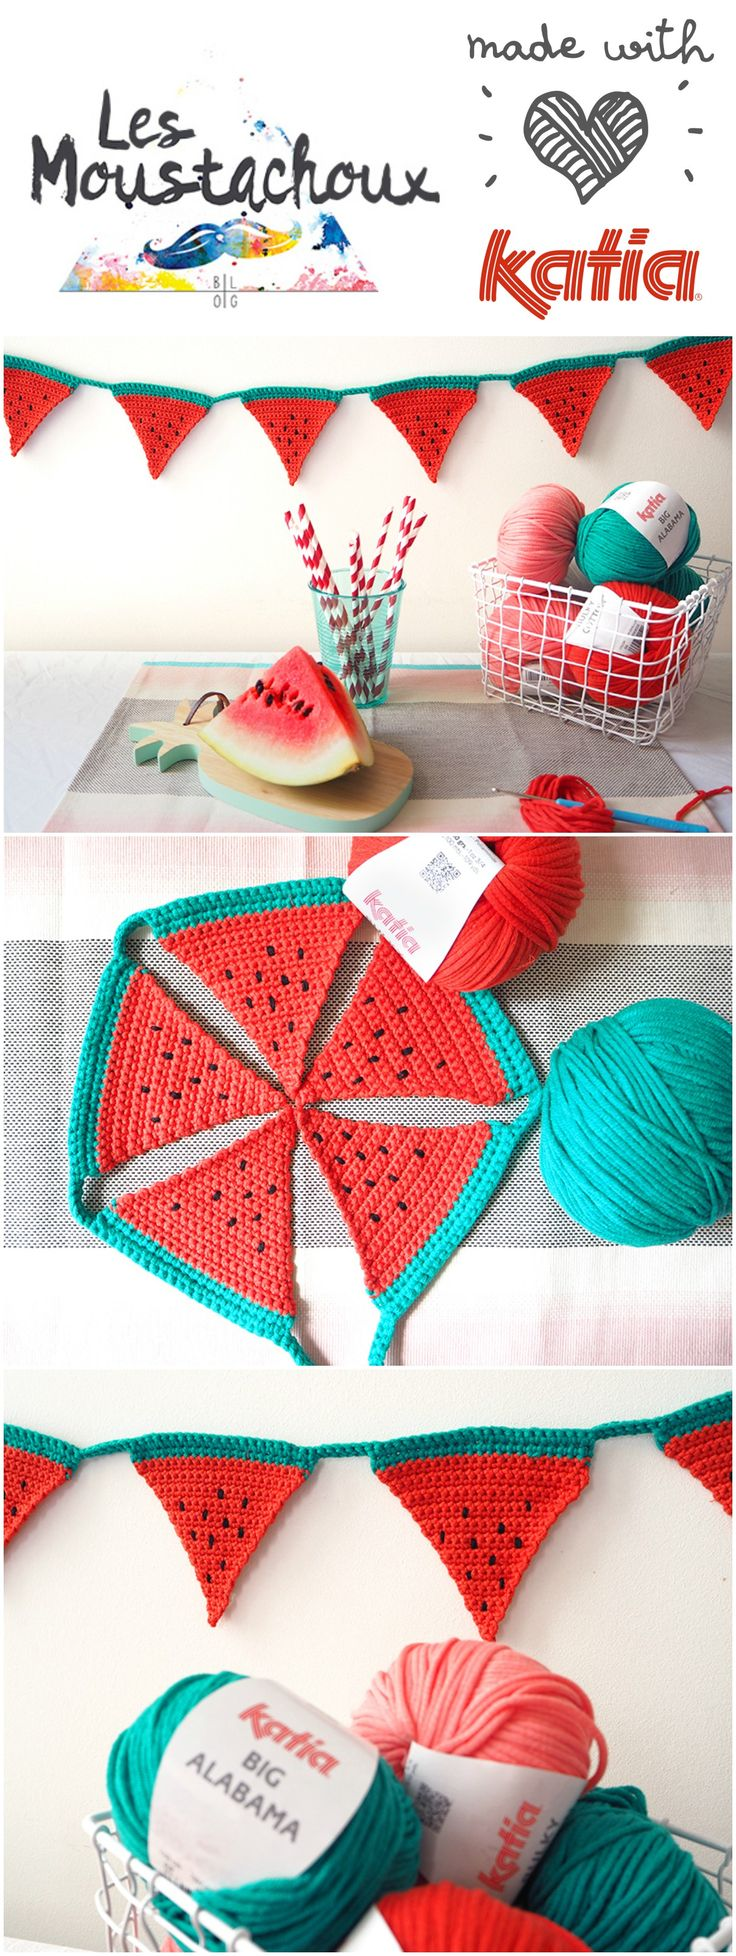 Craft Lovers ♥ Guirnalda de sandías a ganchillo por Les Moustachoux con Bulky Cotton y Big Alabama | http://www.katia.com/blog/es/craftlovers-guirnalda-sandias-a-ganchillo-les-moustachoux/